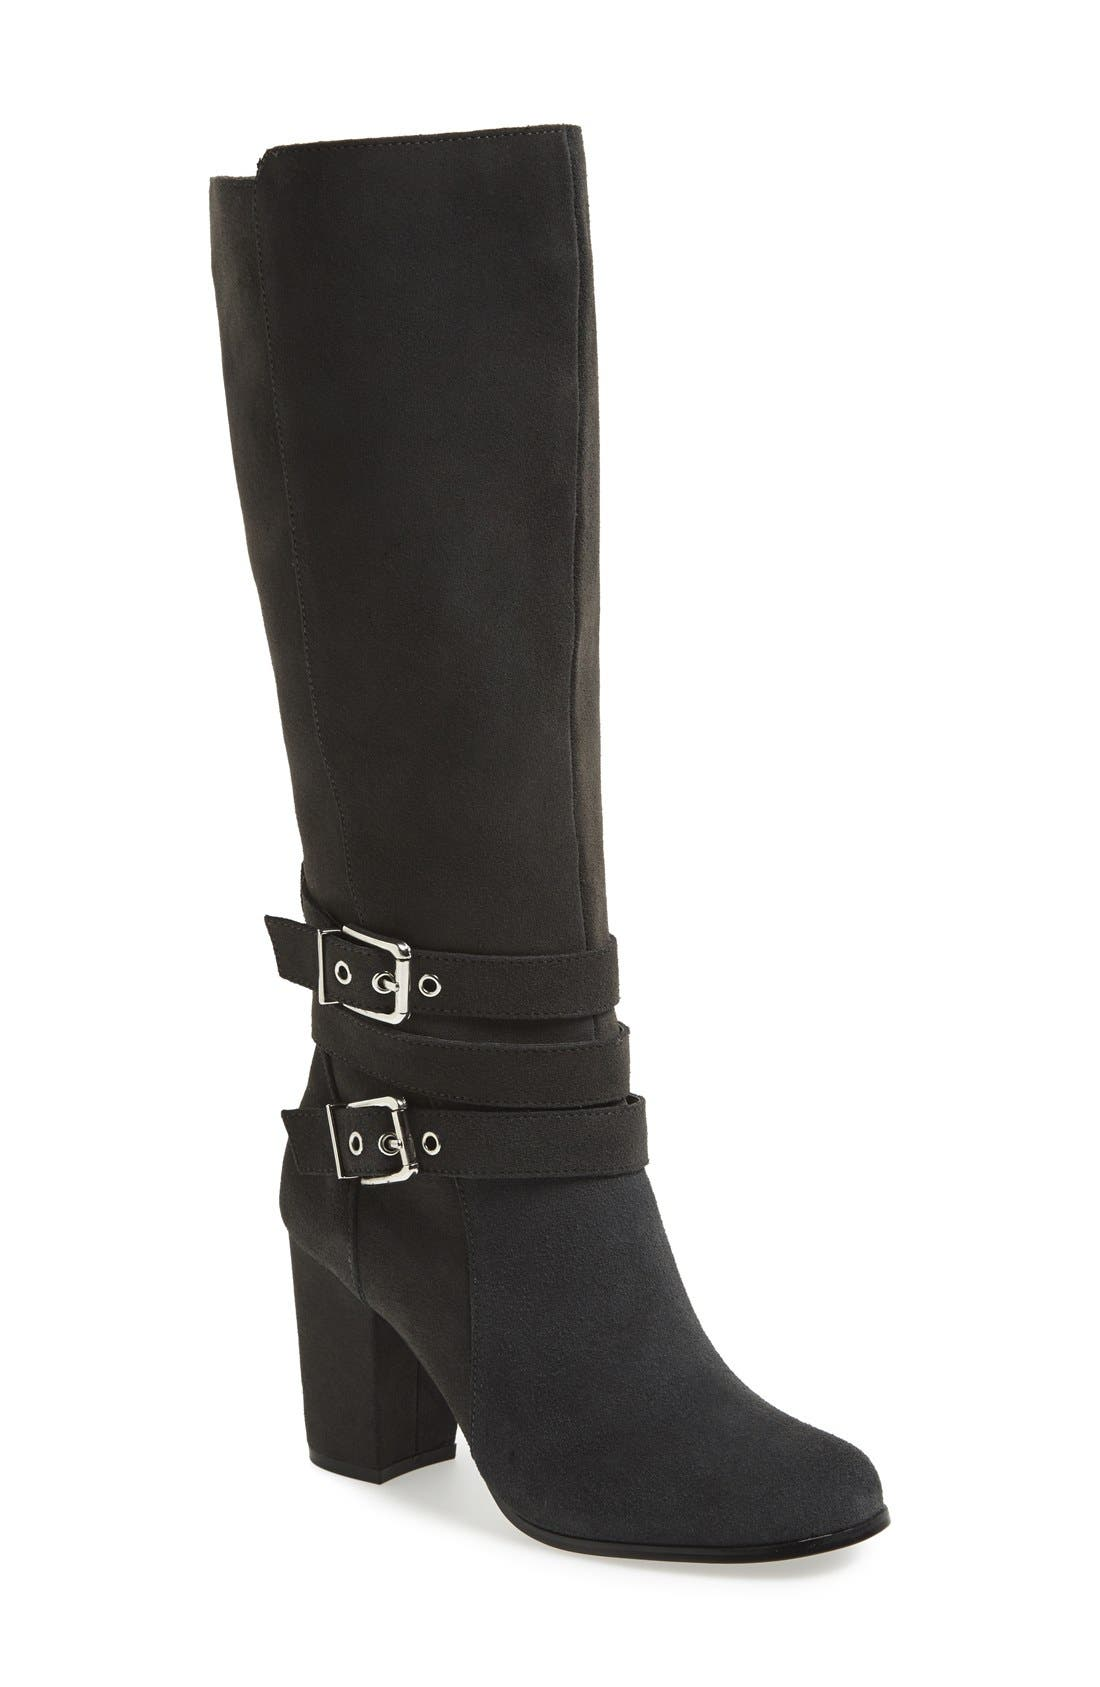 Main Image - Charles by Charles David 'Valence' Knee High Suede Boot (Women)